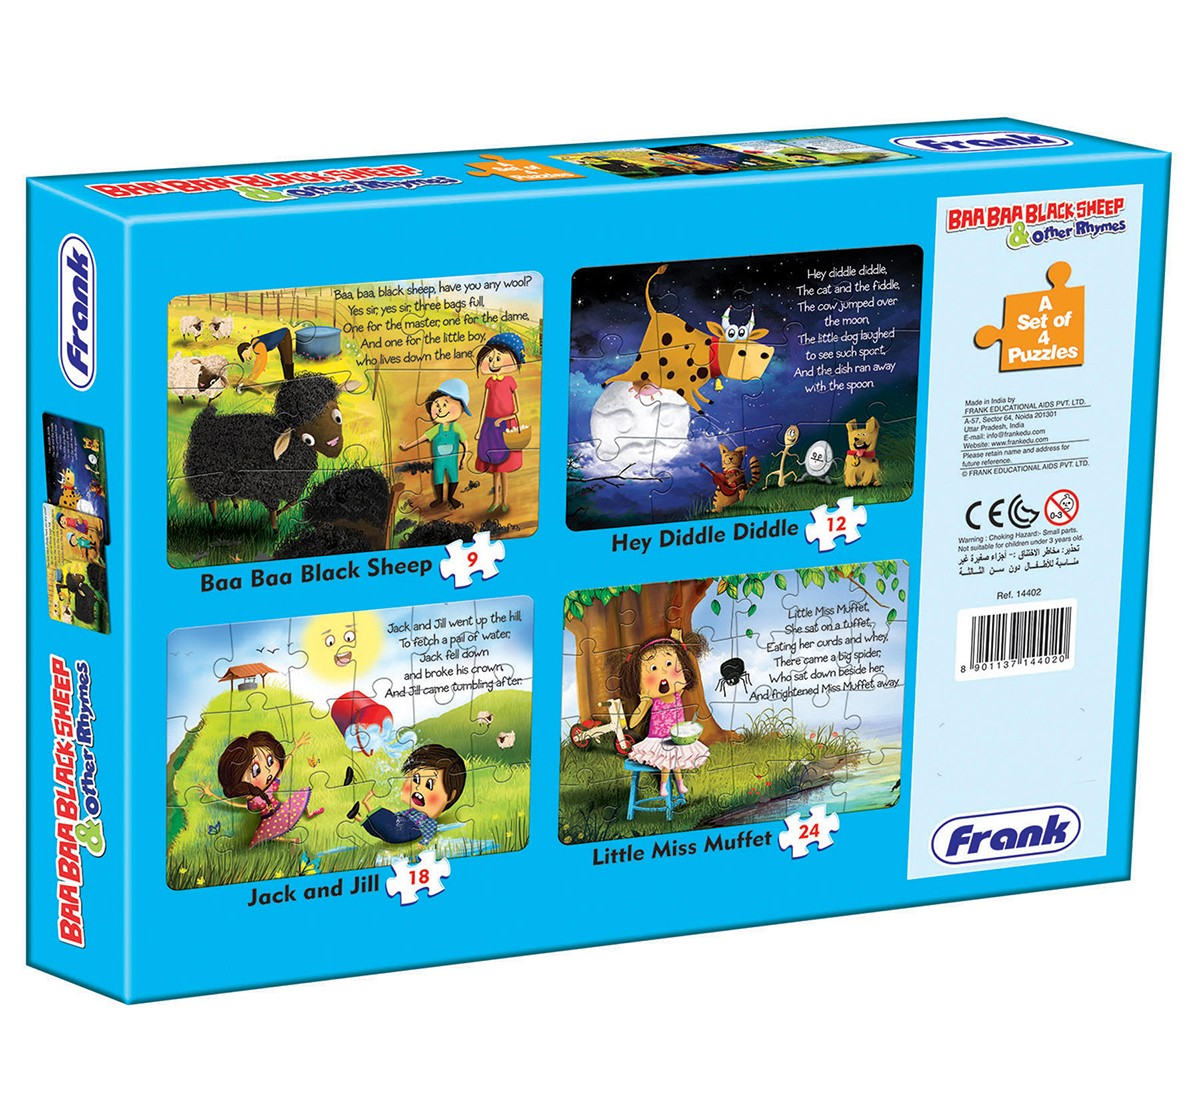 Frank Baa Baa Black Sheep And Other Rhymes Puzzle for Kids age 3Y+